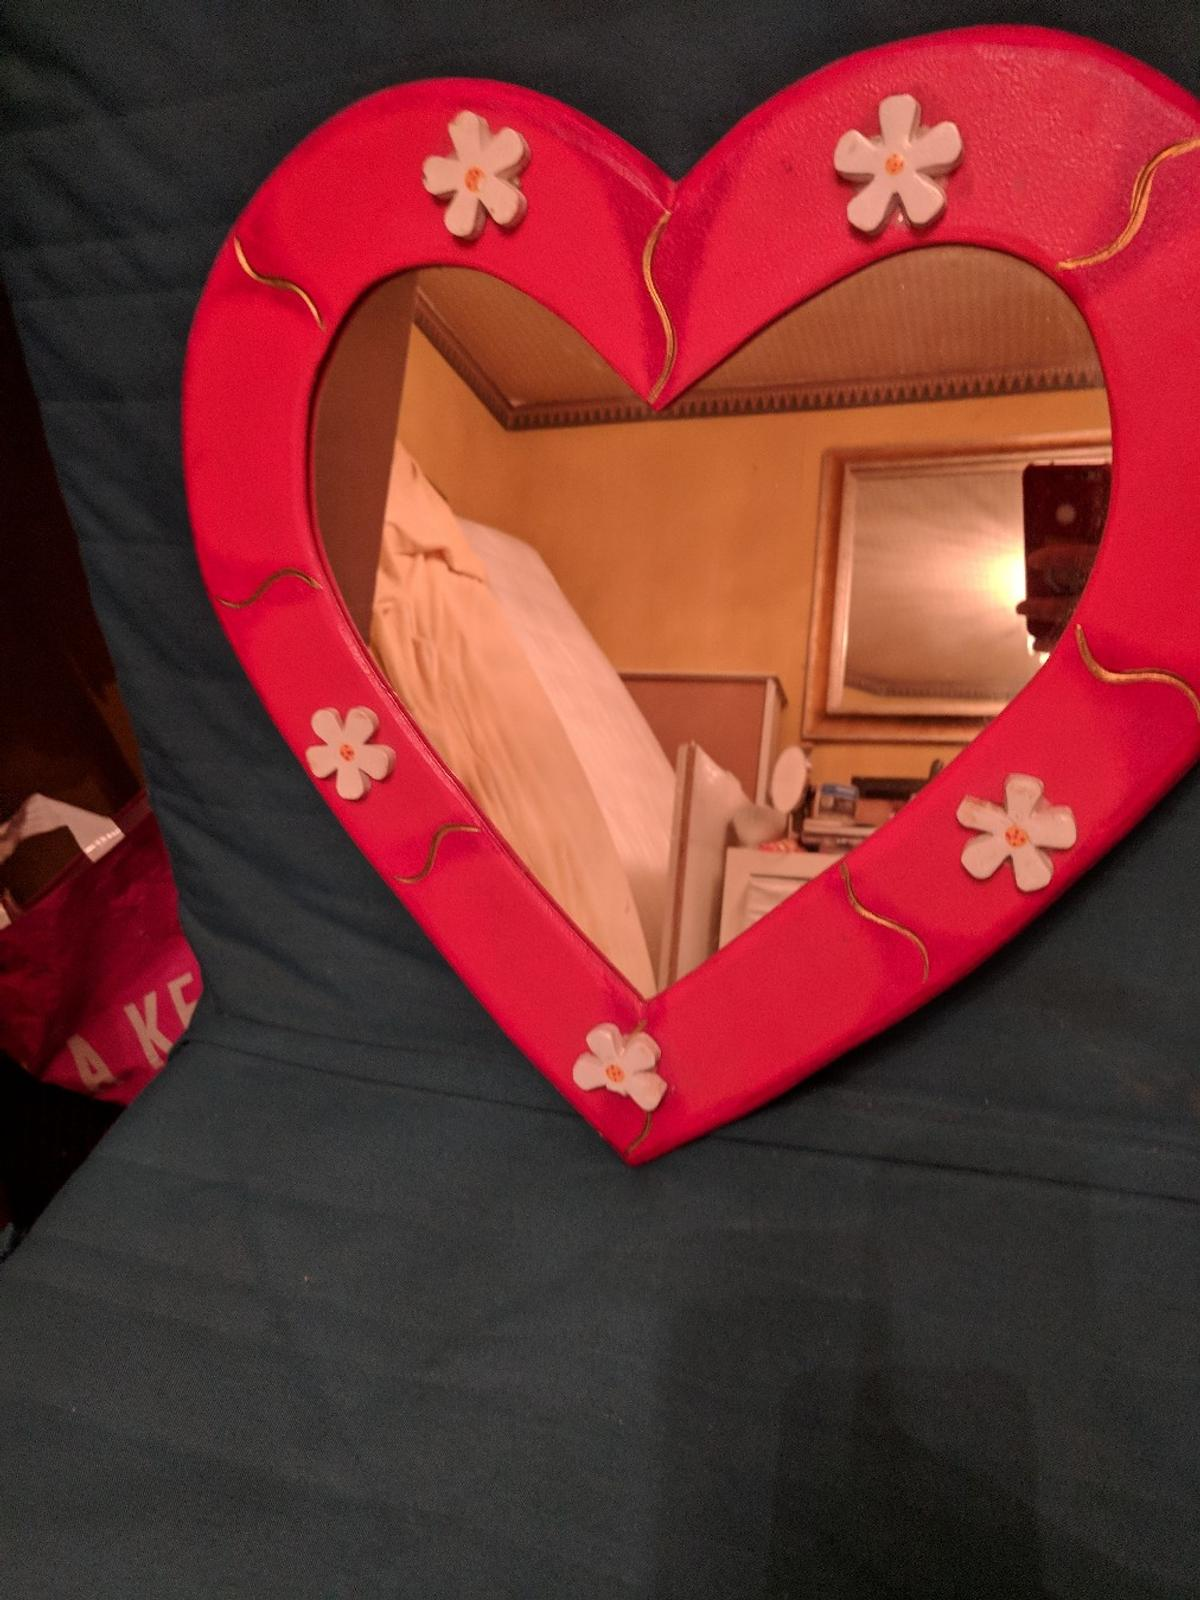 Heart Mirror In W13 London For 7 00 For Sale Shpock